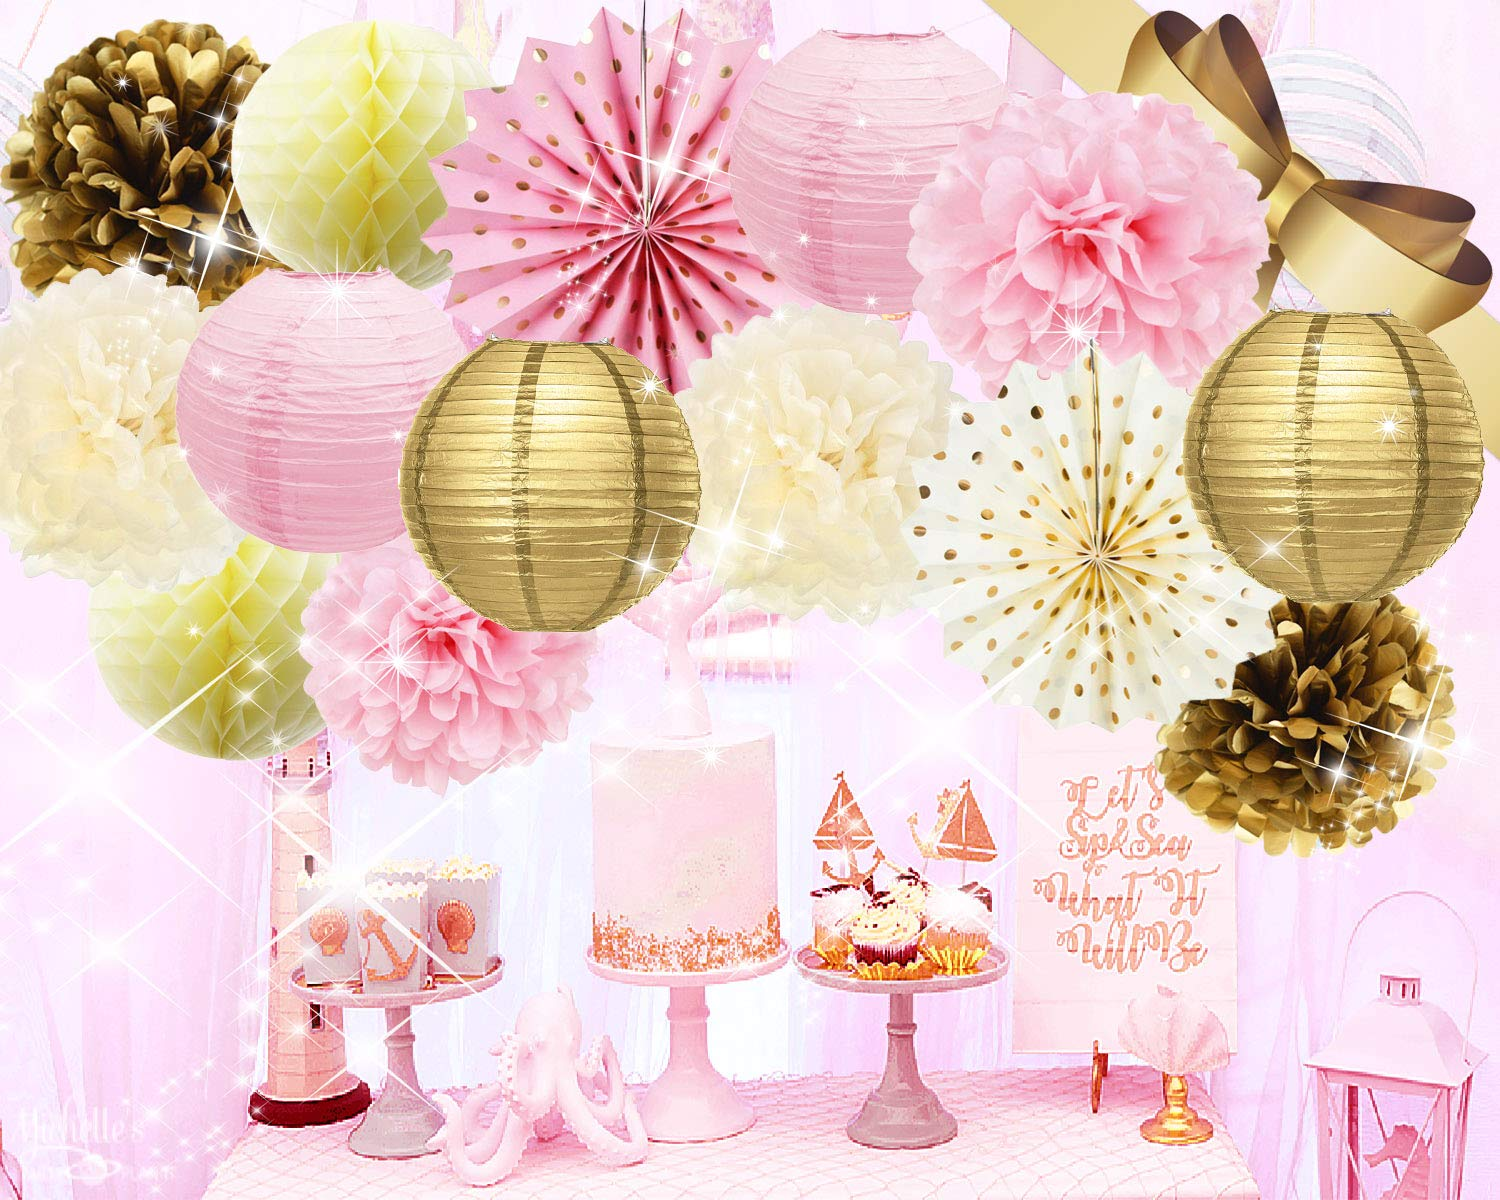 Pink Gold Baby Shower Decorations Polka Dot Paper Fan Tissue Paper Pom Pom  Honeycomb Balls for Pink Gold First Birthday Party Decorations/ Bridal  Shower ...